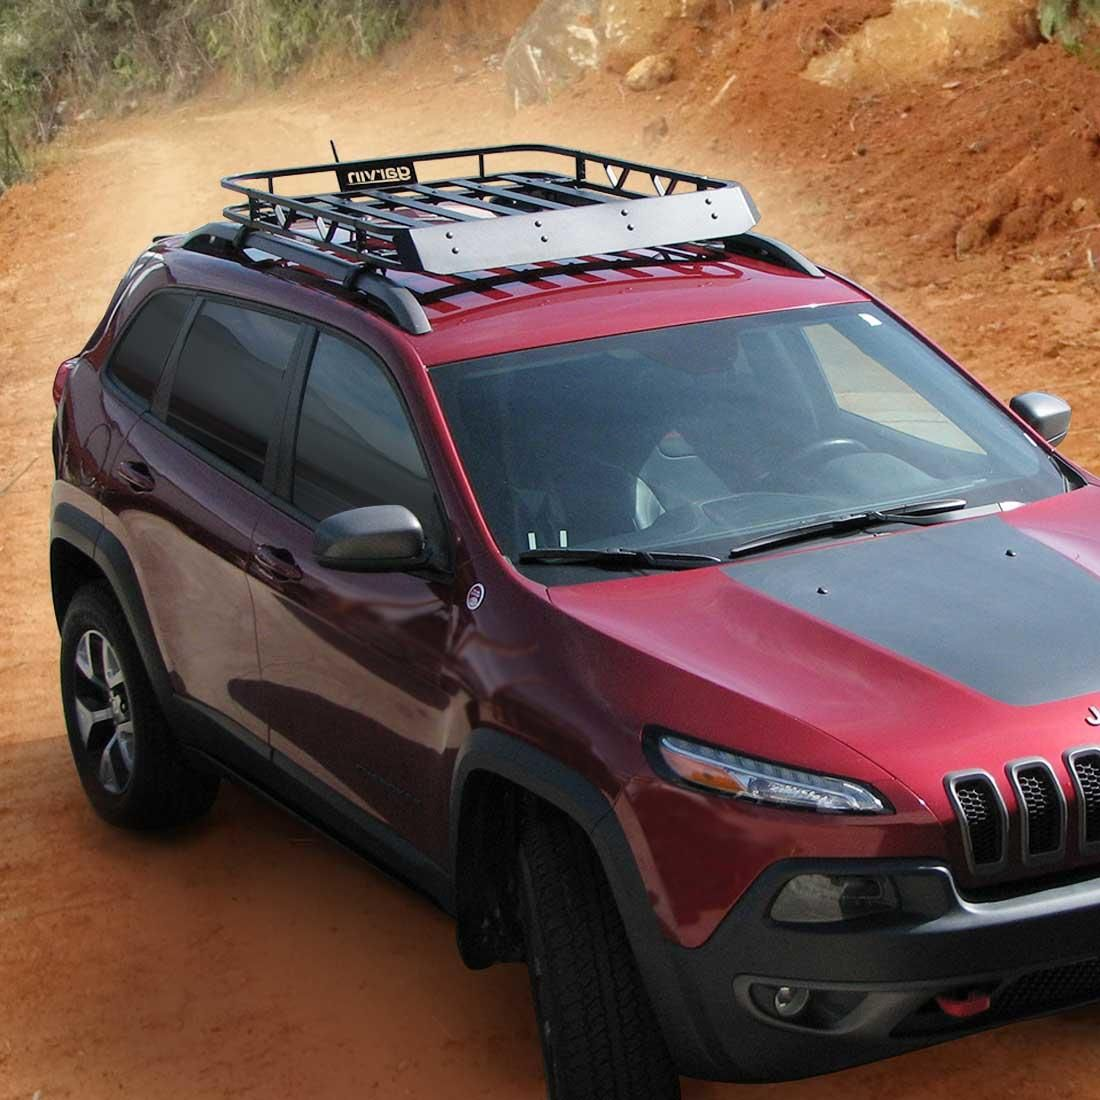 Garvin C 34018 Rack 14 17 Jeep Cherokee Kl With Images Jeep Cherokee Jeep Cherokee Sport Jeep Cherokee Accessories